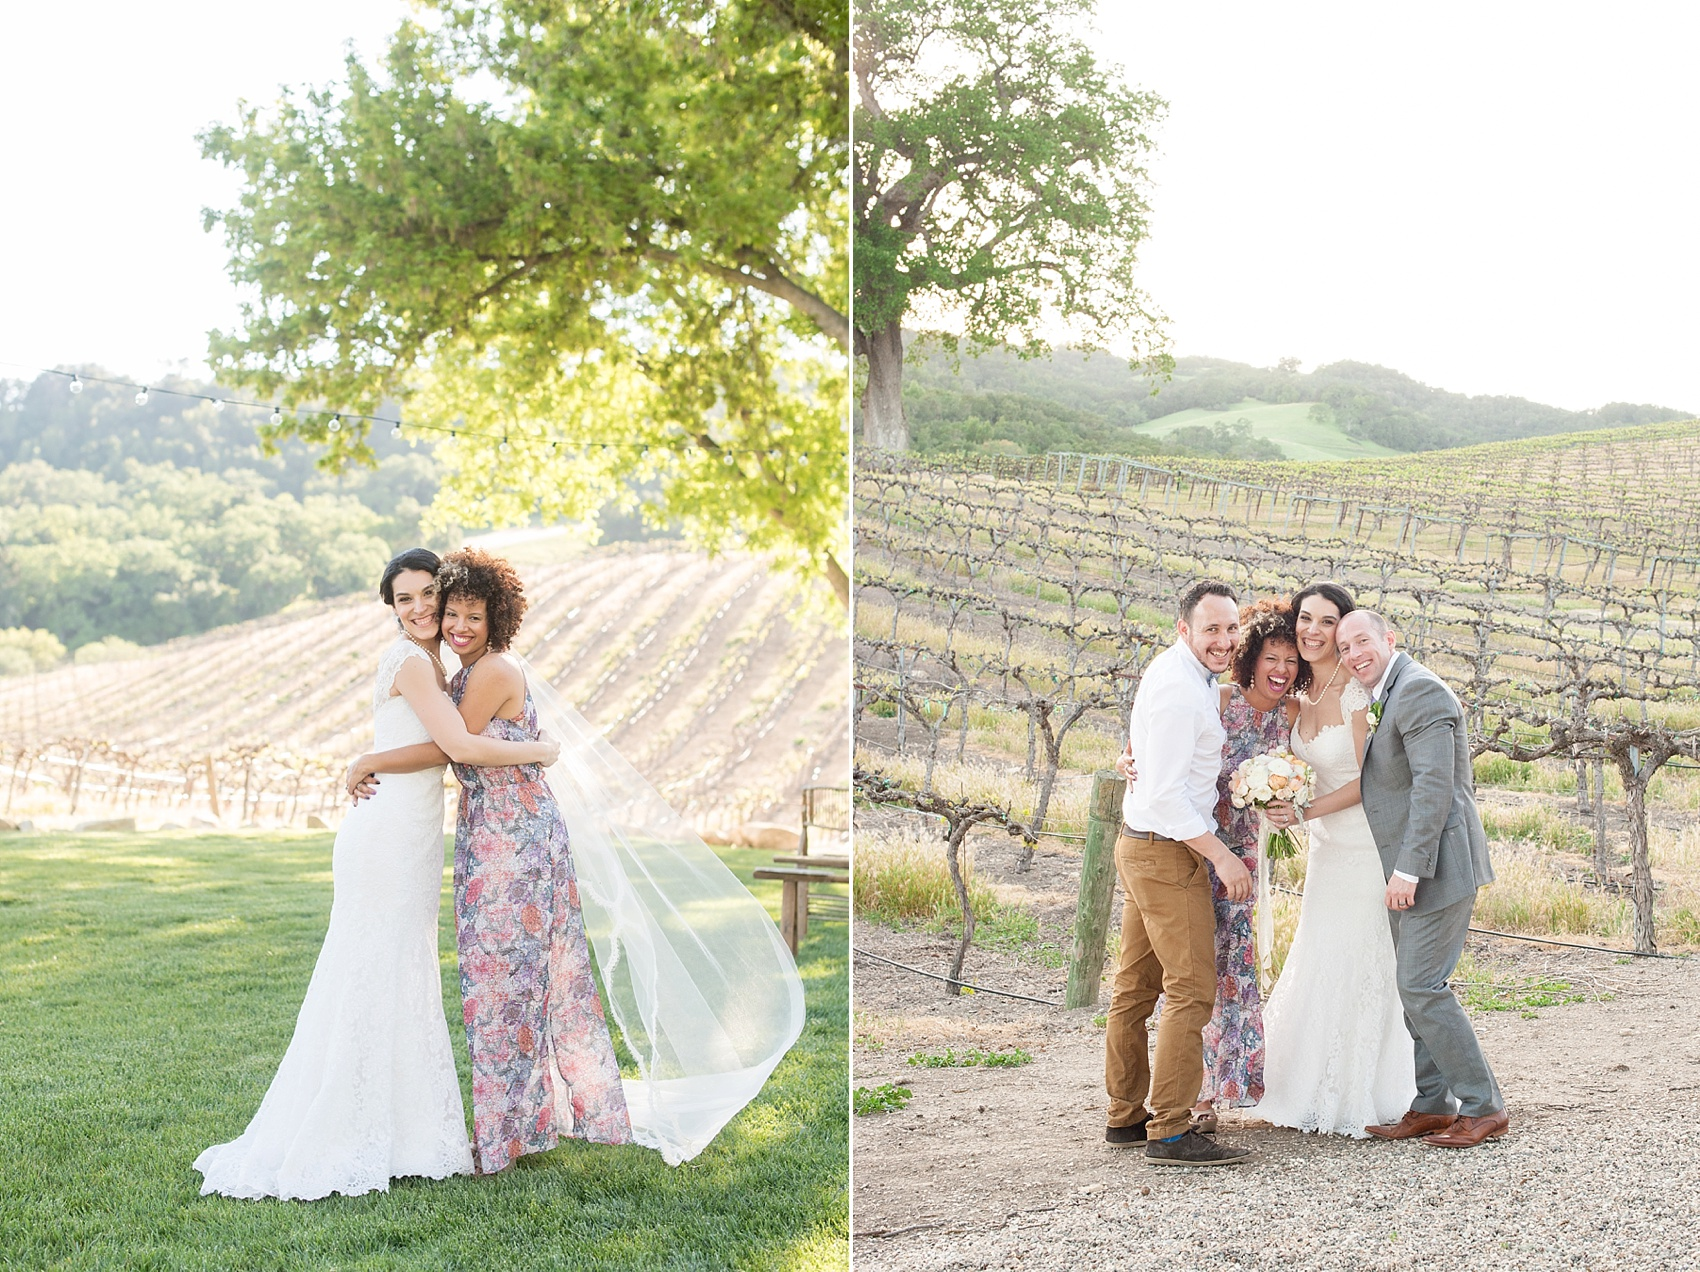 Spring vineyard elopement with Mikkel Paige, destination wedding photographer. Held at HammerSky Vineyard, south of San Francisco.